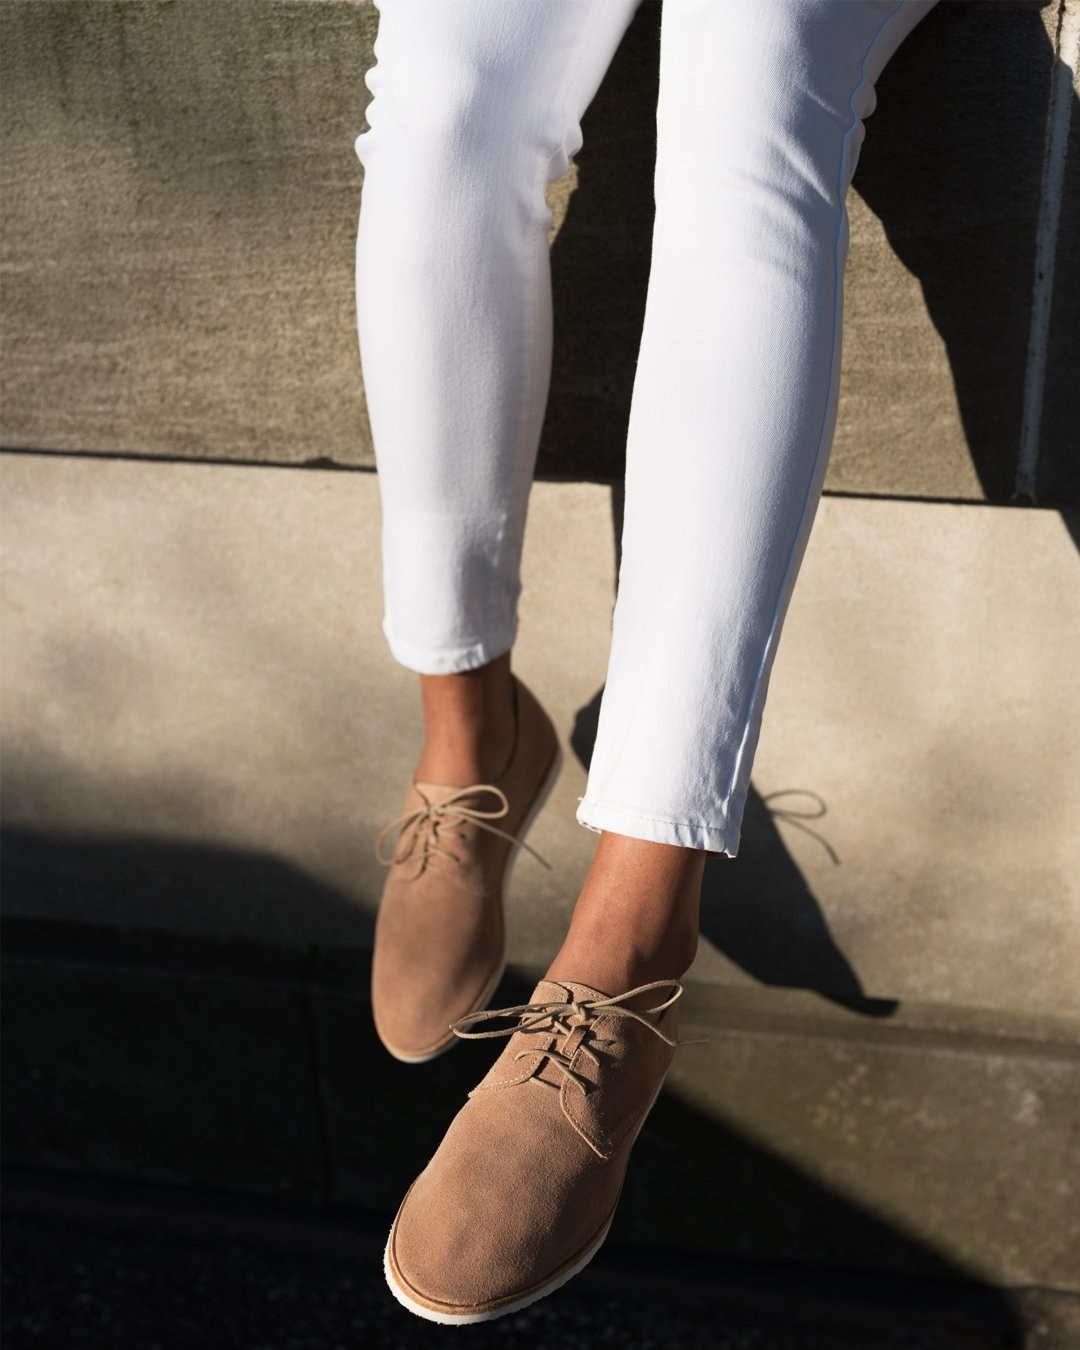 Model wearing the sneaker-style shoe with brown suede body, white sole, and laces